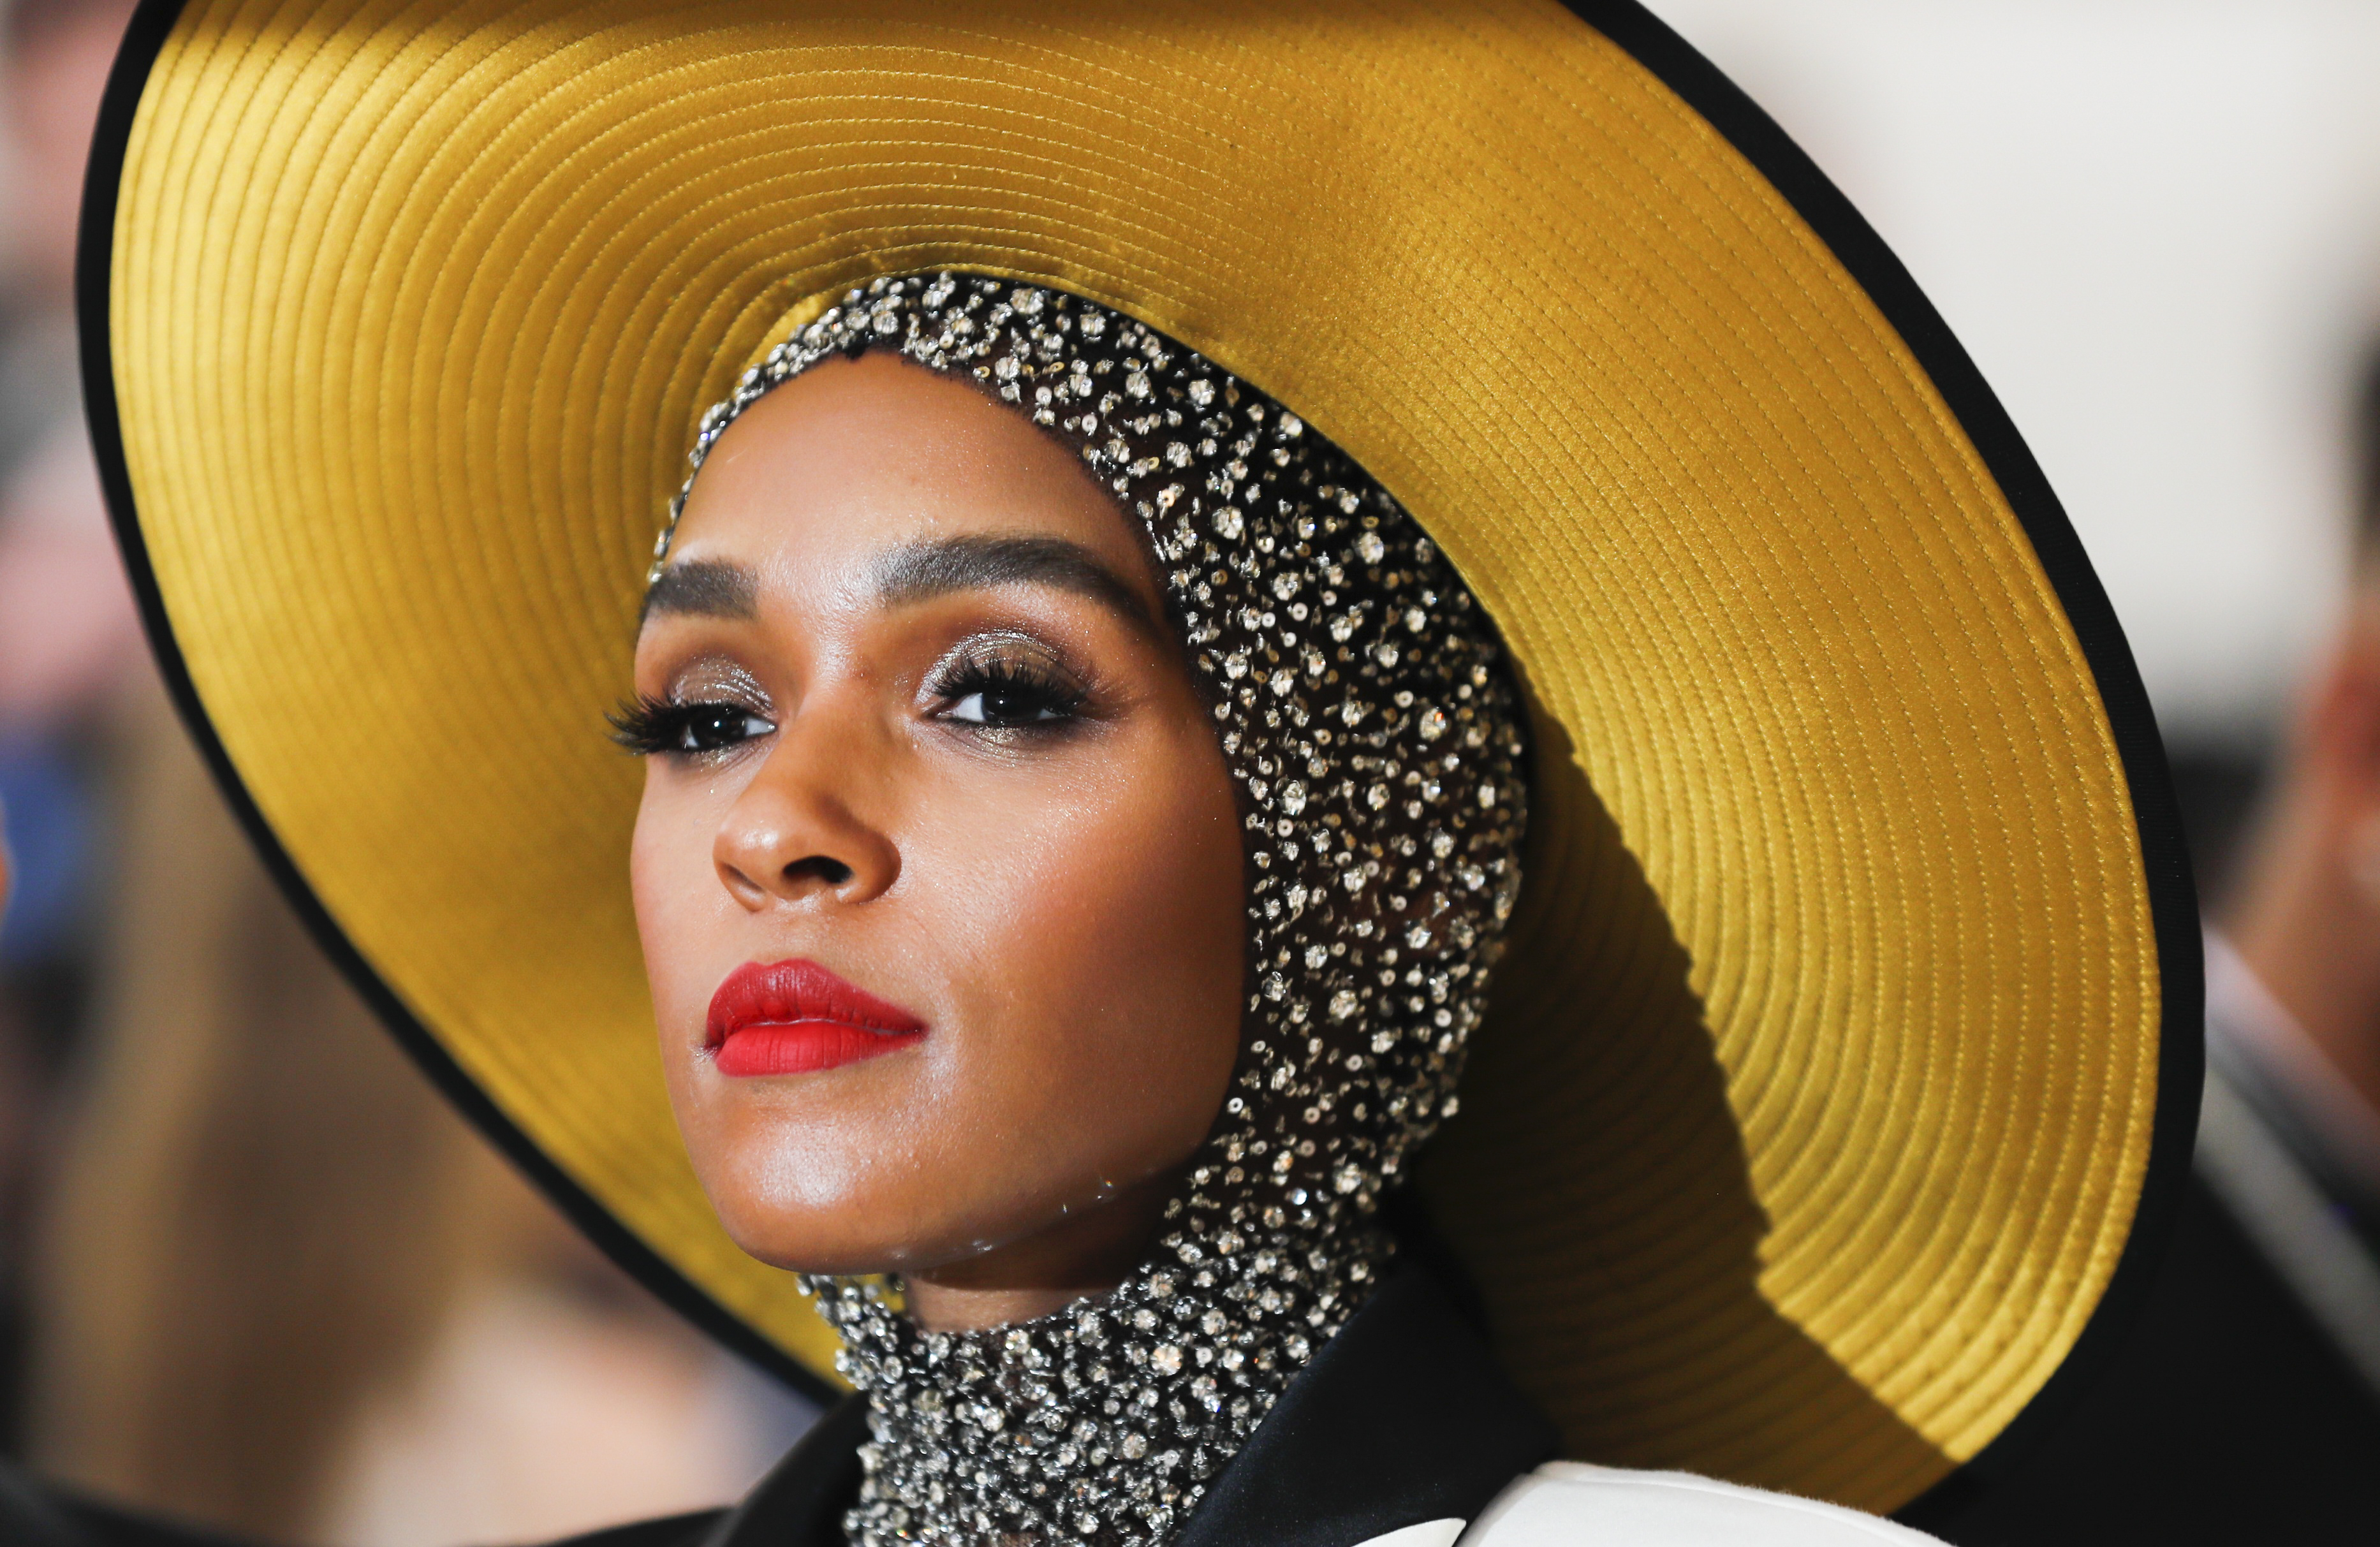 """Singer-Songwriter Janelle Monae arrives at the Metropolitan Museum of Art Costume Institute Gala (Met Gala) to celebrate the opening of """"Heavenly Bodies: Fashion and the Catholic Imagination""""."""